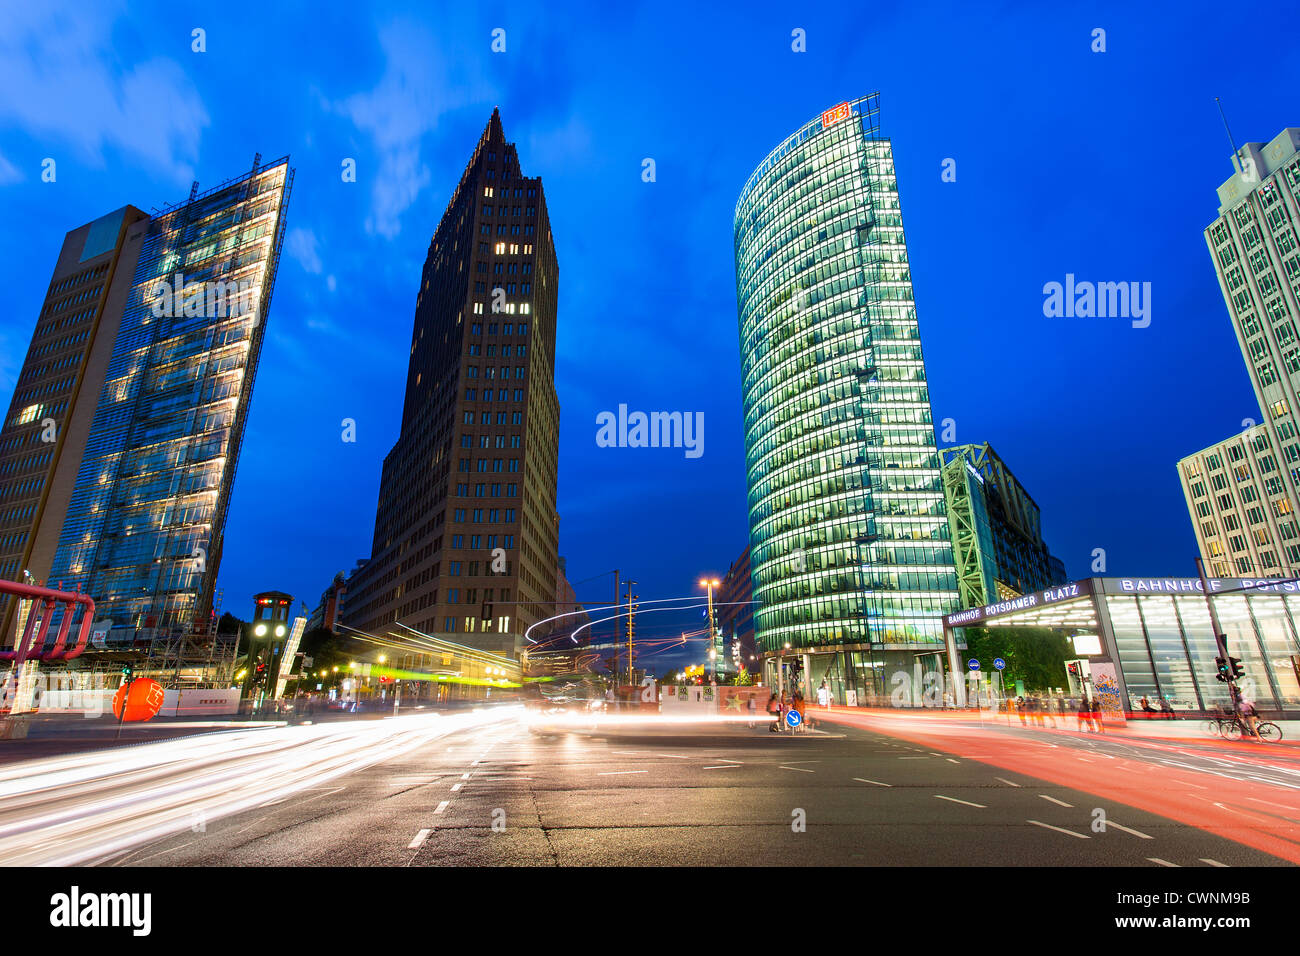 Europe, Germany, Berlin, Skyscrapers at Potsdamer Platz - Stock Image